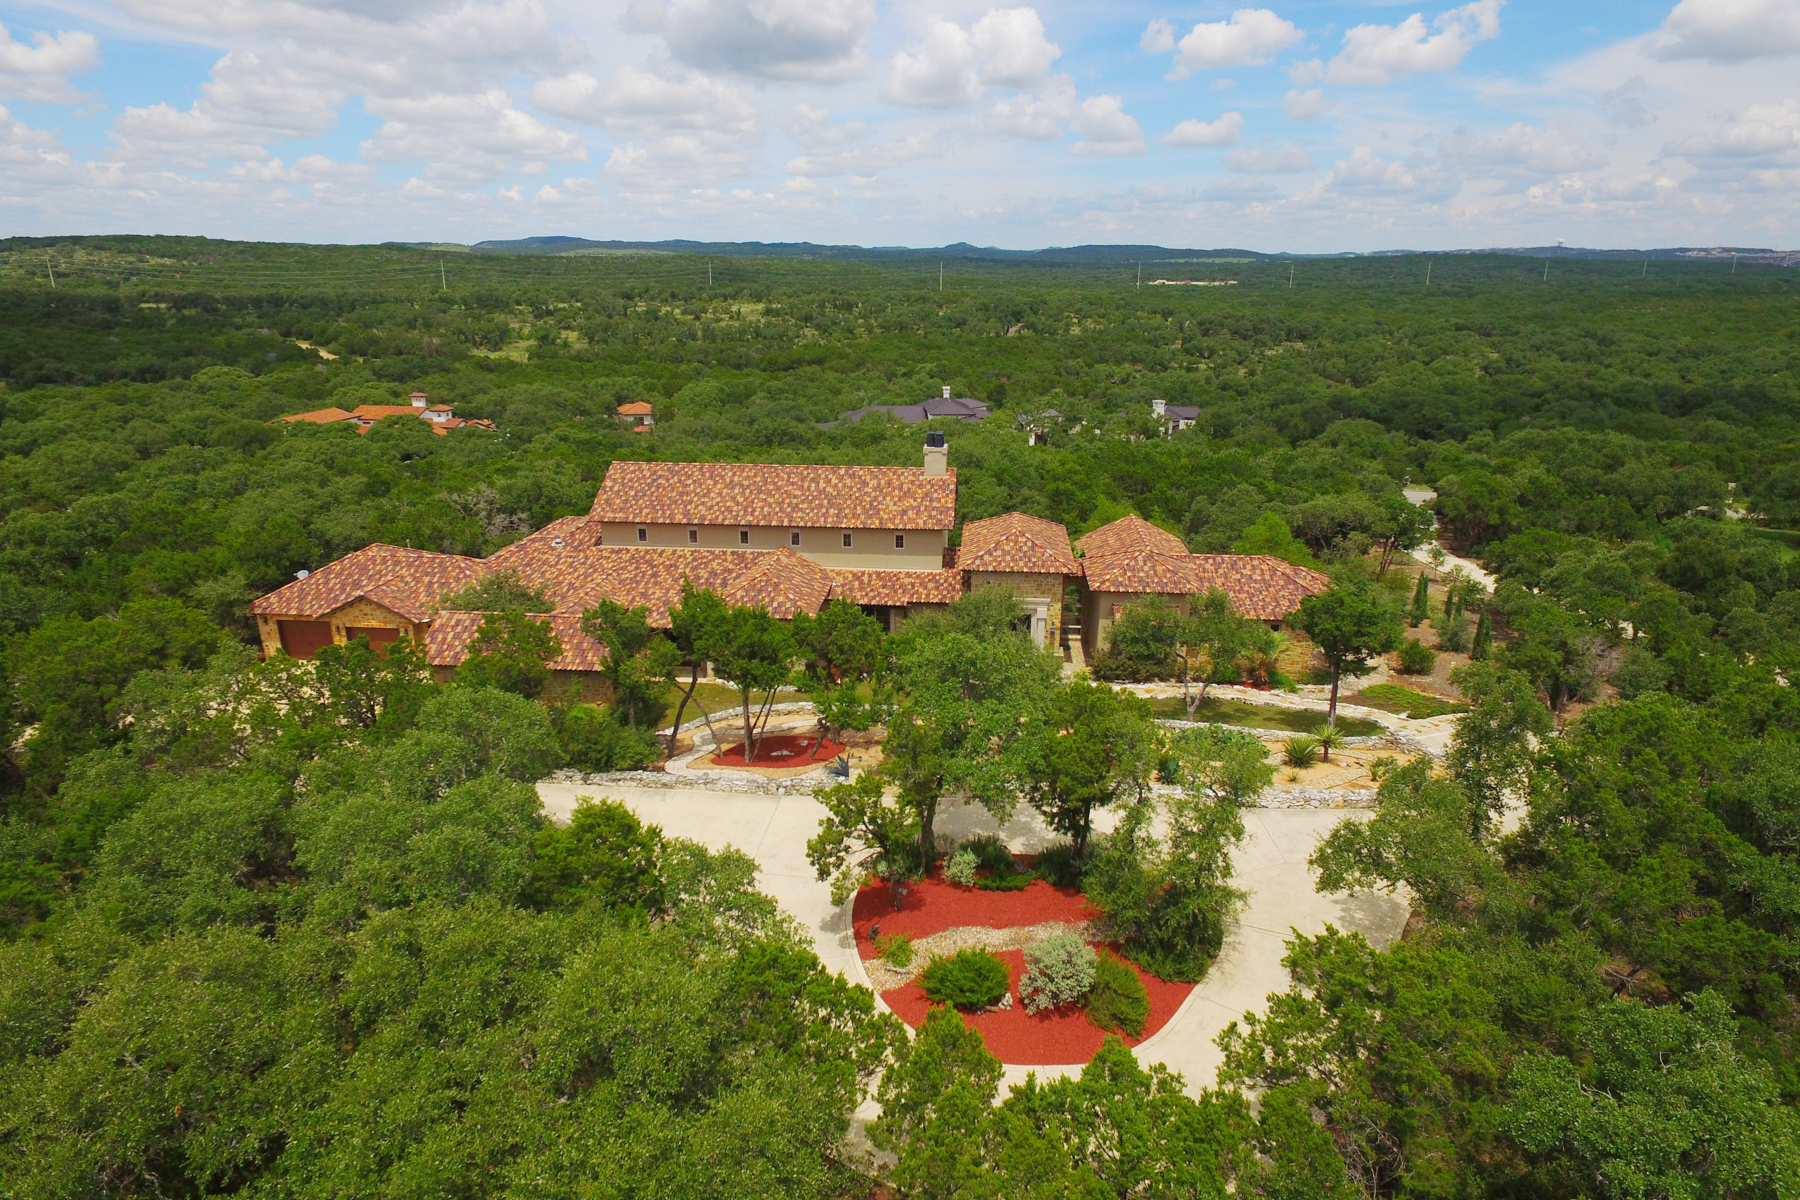 Casa Unifamiliar por un Venta en Breathtaking Estate in Greystone Estates 19418 Settlers Crk San Antonio, Texas 78258 Estados Unidos